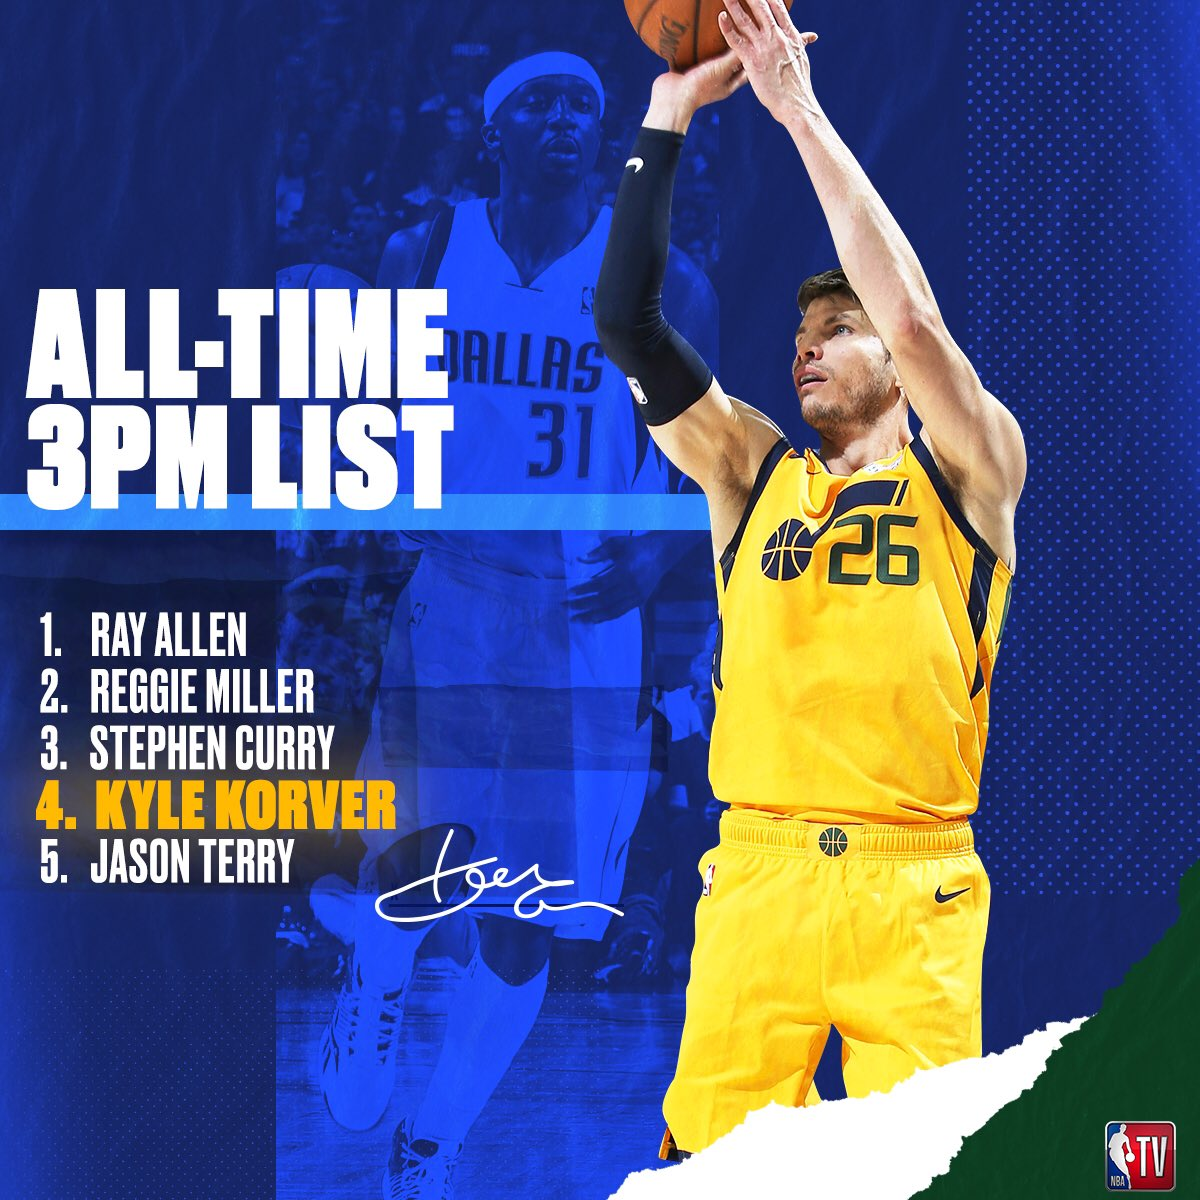 Kyle Korver moves into 4th place on the all-time 3PM list with 2,284 and counting! 👏